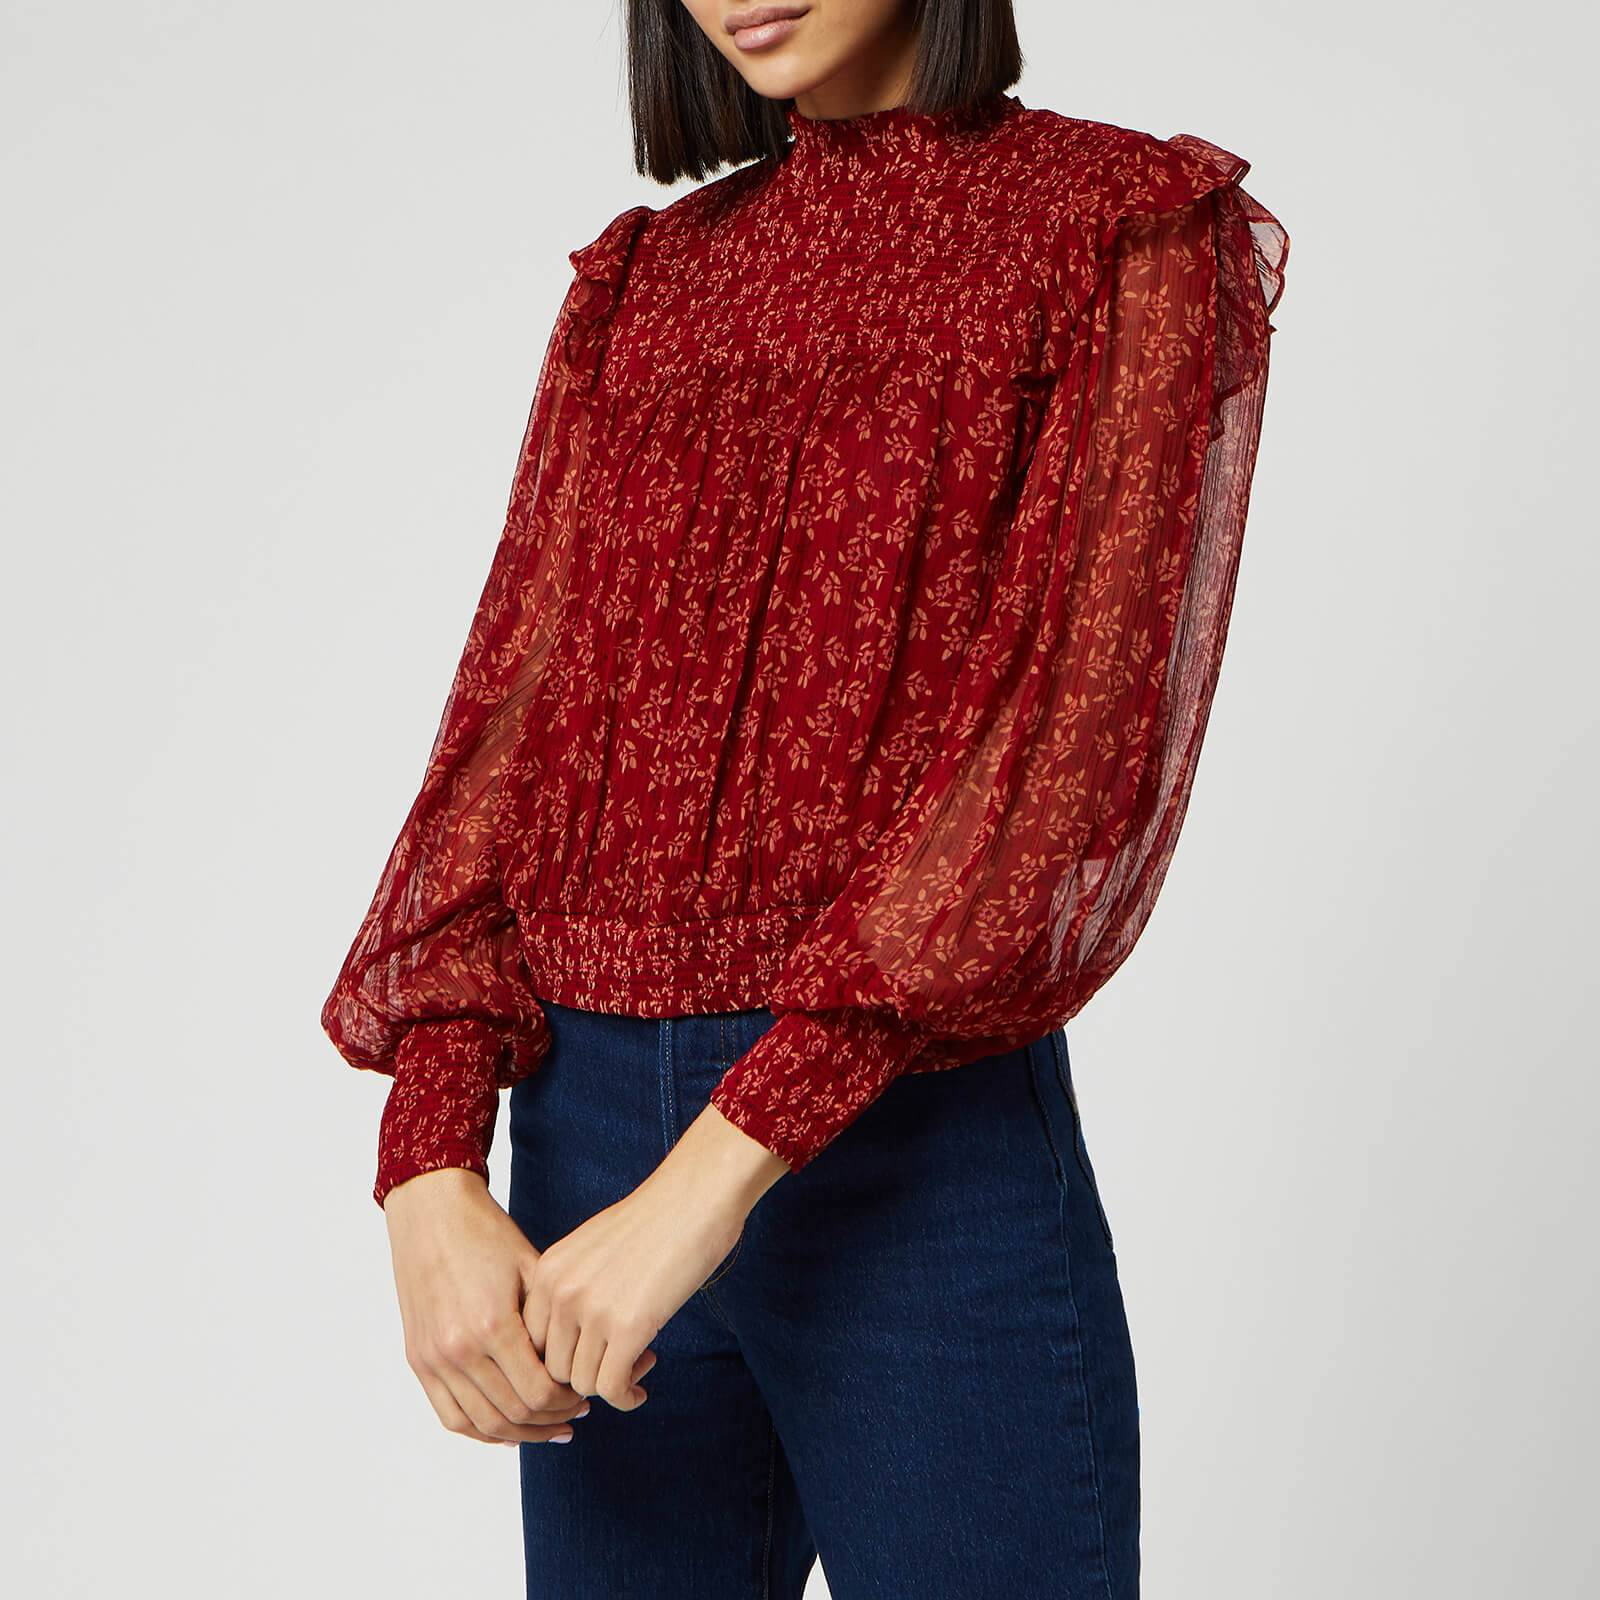 Free People Women's Roma Blouse - Red - M